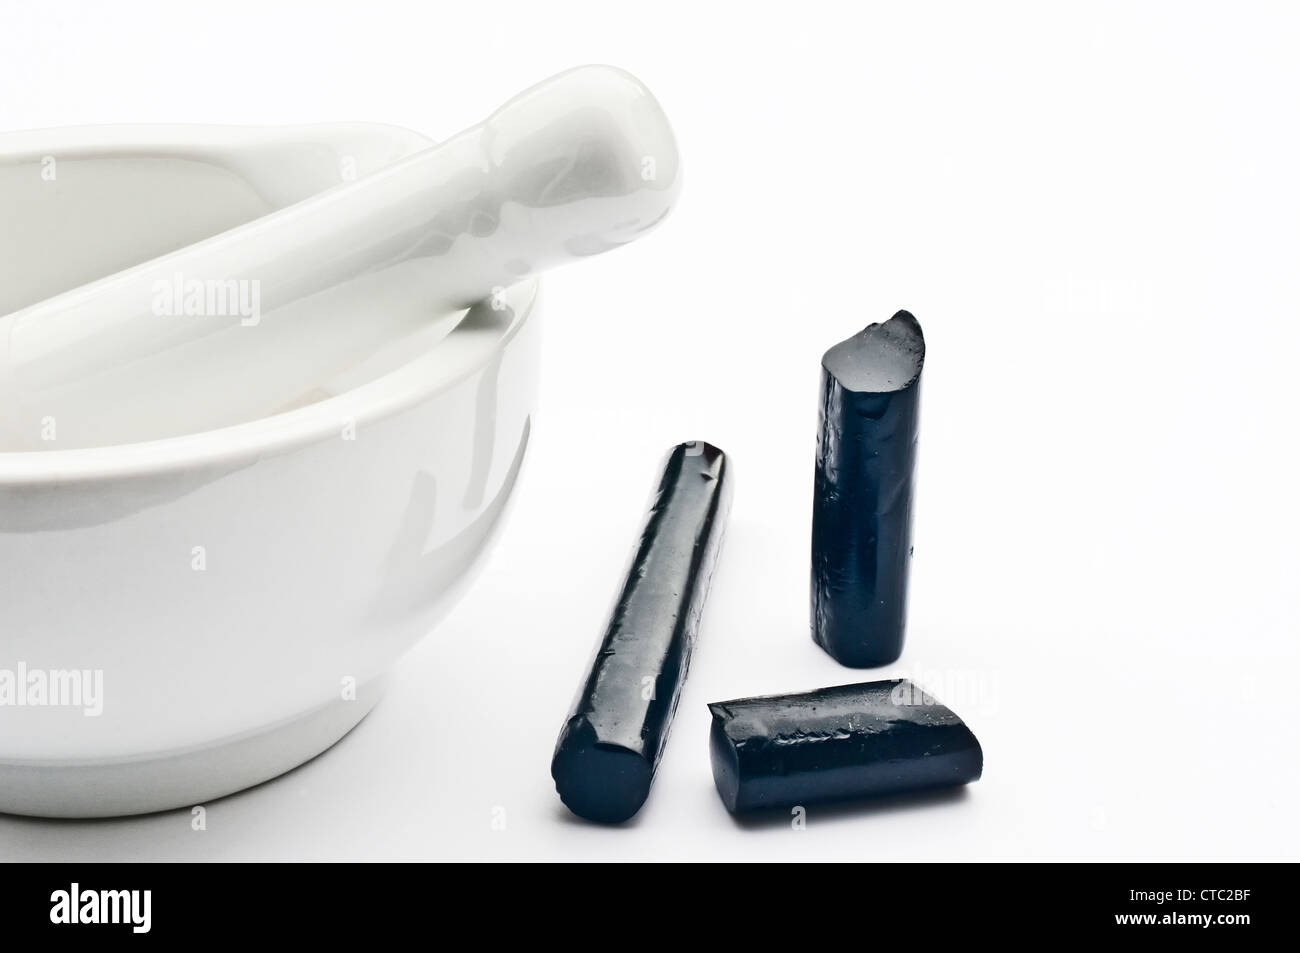 liquorice sticks with mortar - Stock Image